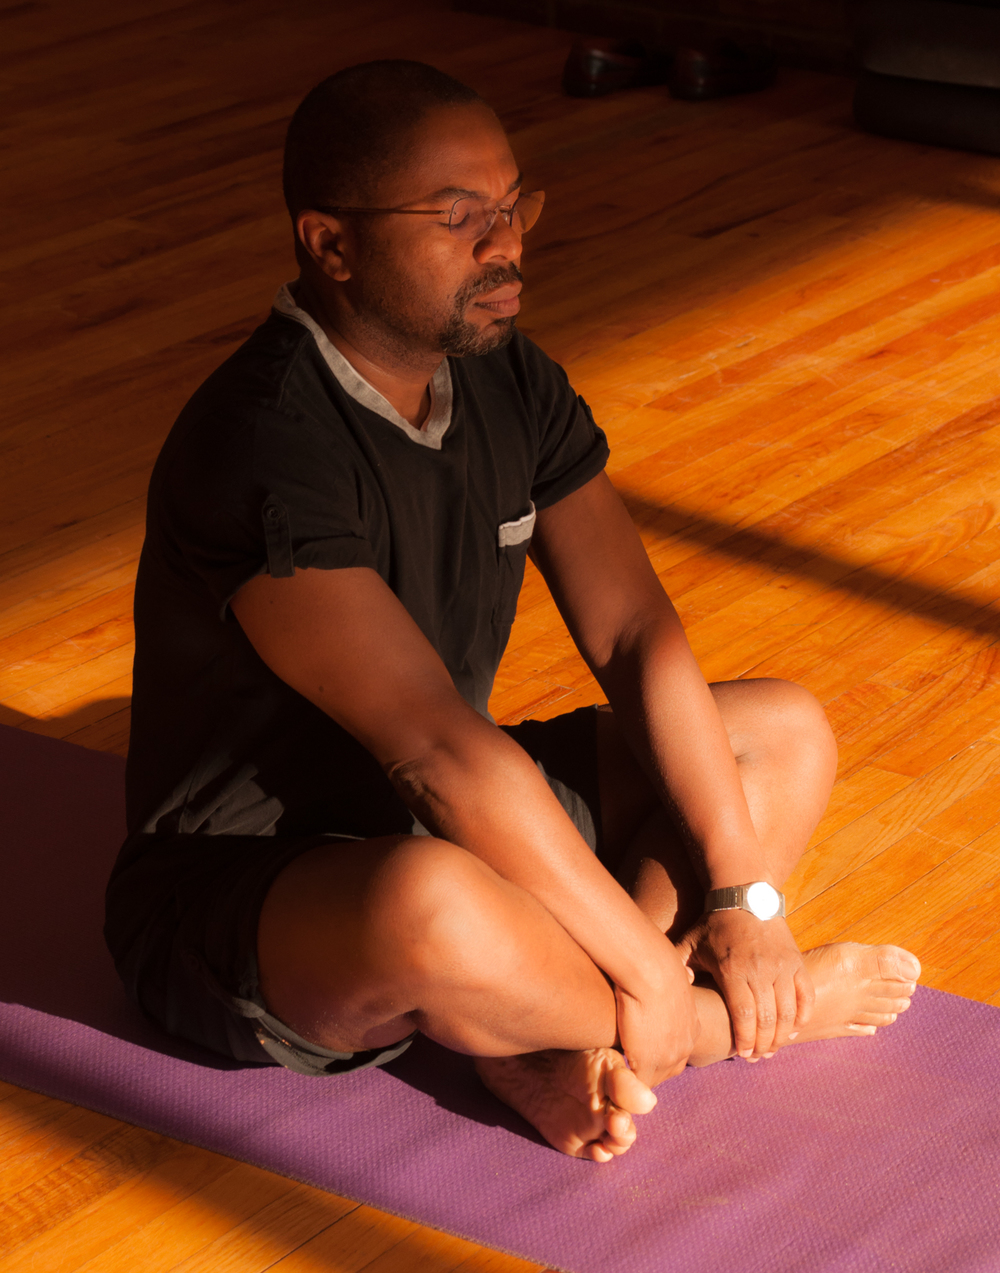 Man meditating on a yoga mat